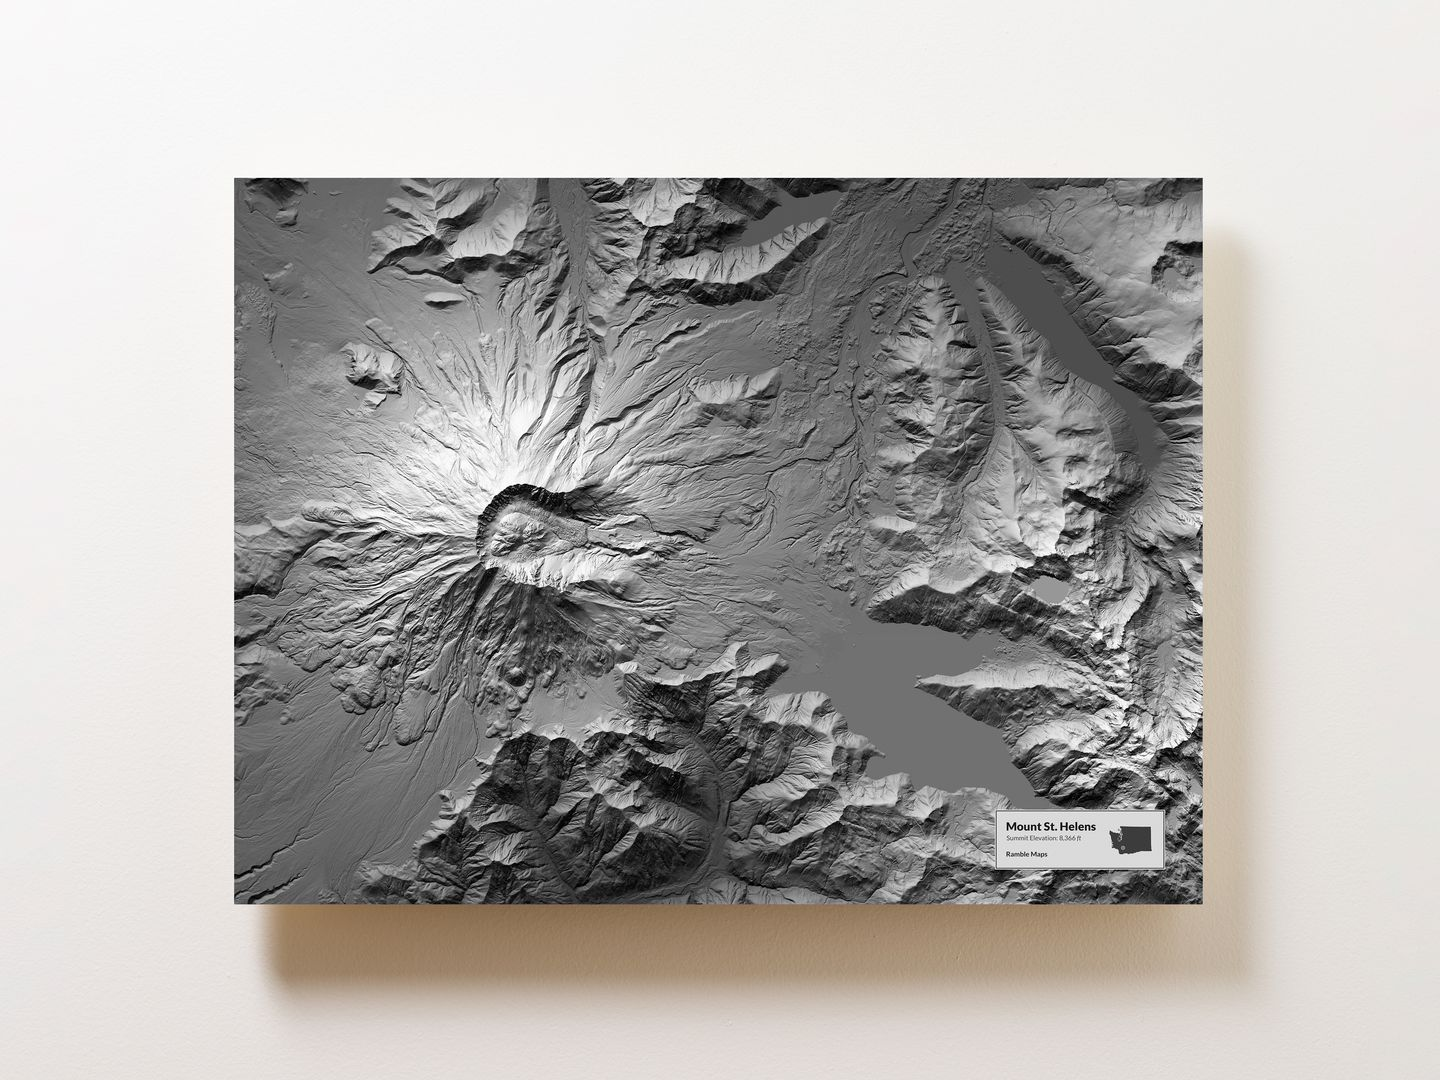 Mount St Helens Wall Map